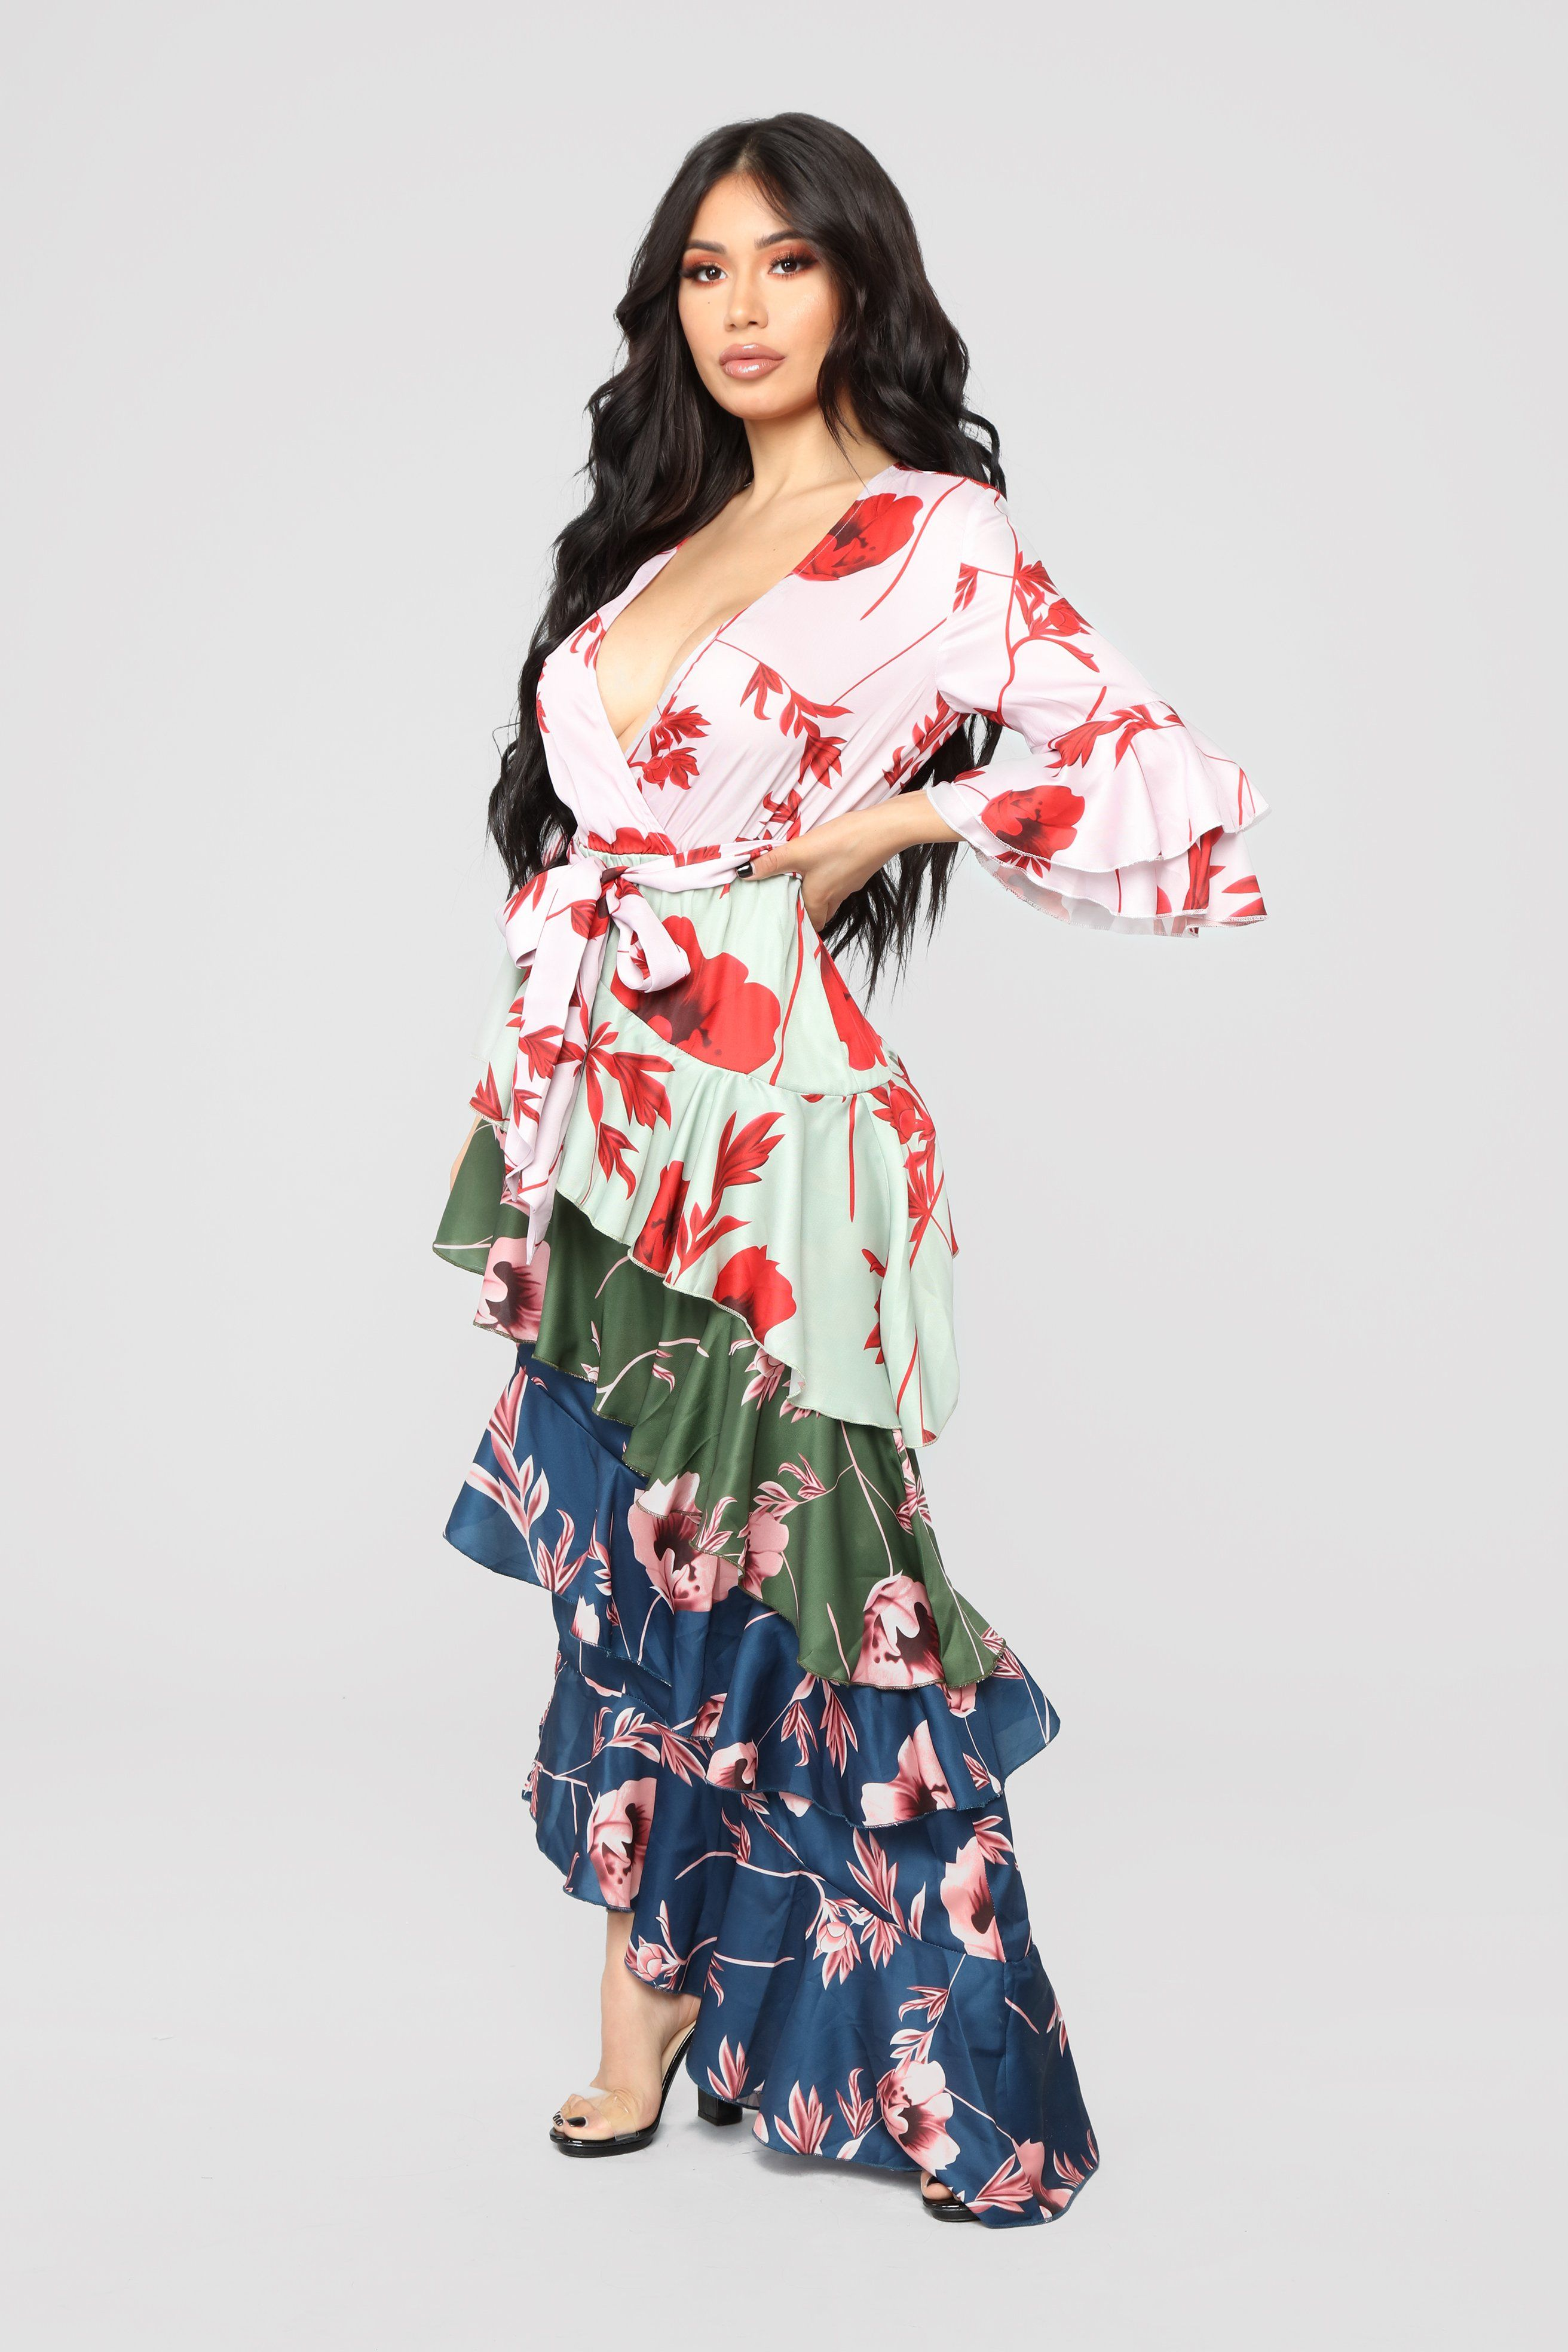 279d5a08ae Only Top Tier Chiffon Maxi Dress - Multi in 2019 | Stylin' and ...